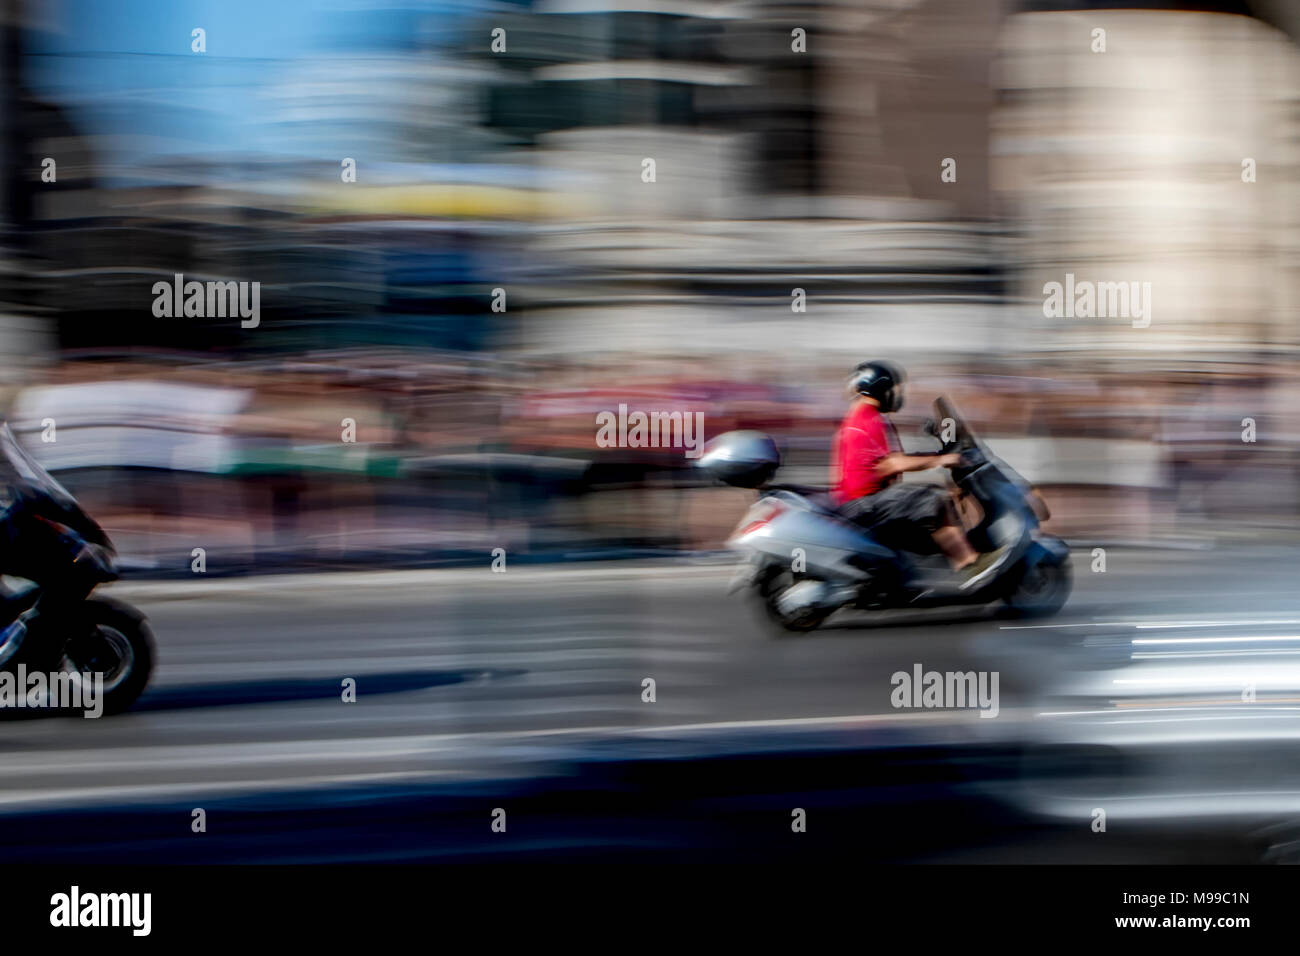 Motorcycle Riders Speeding Along Busy Road In Rome Captured To Show Speed  And Action And Abstract